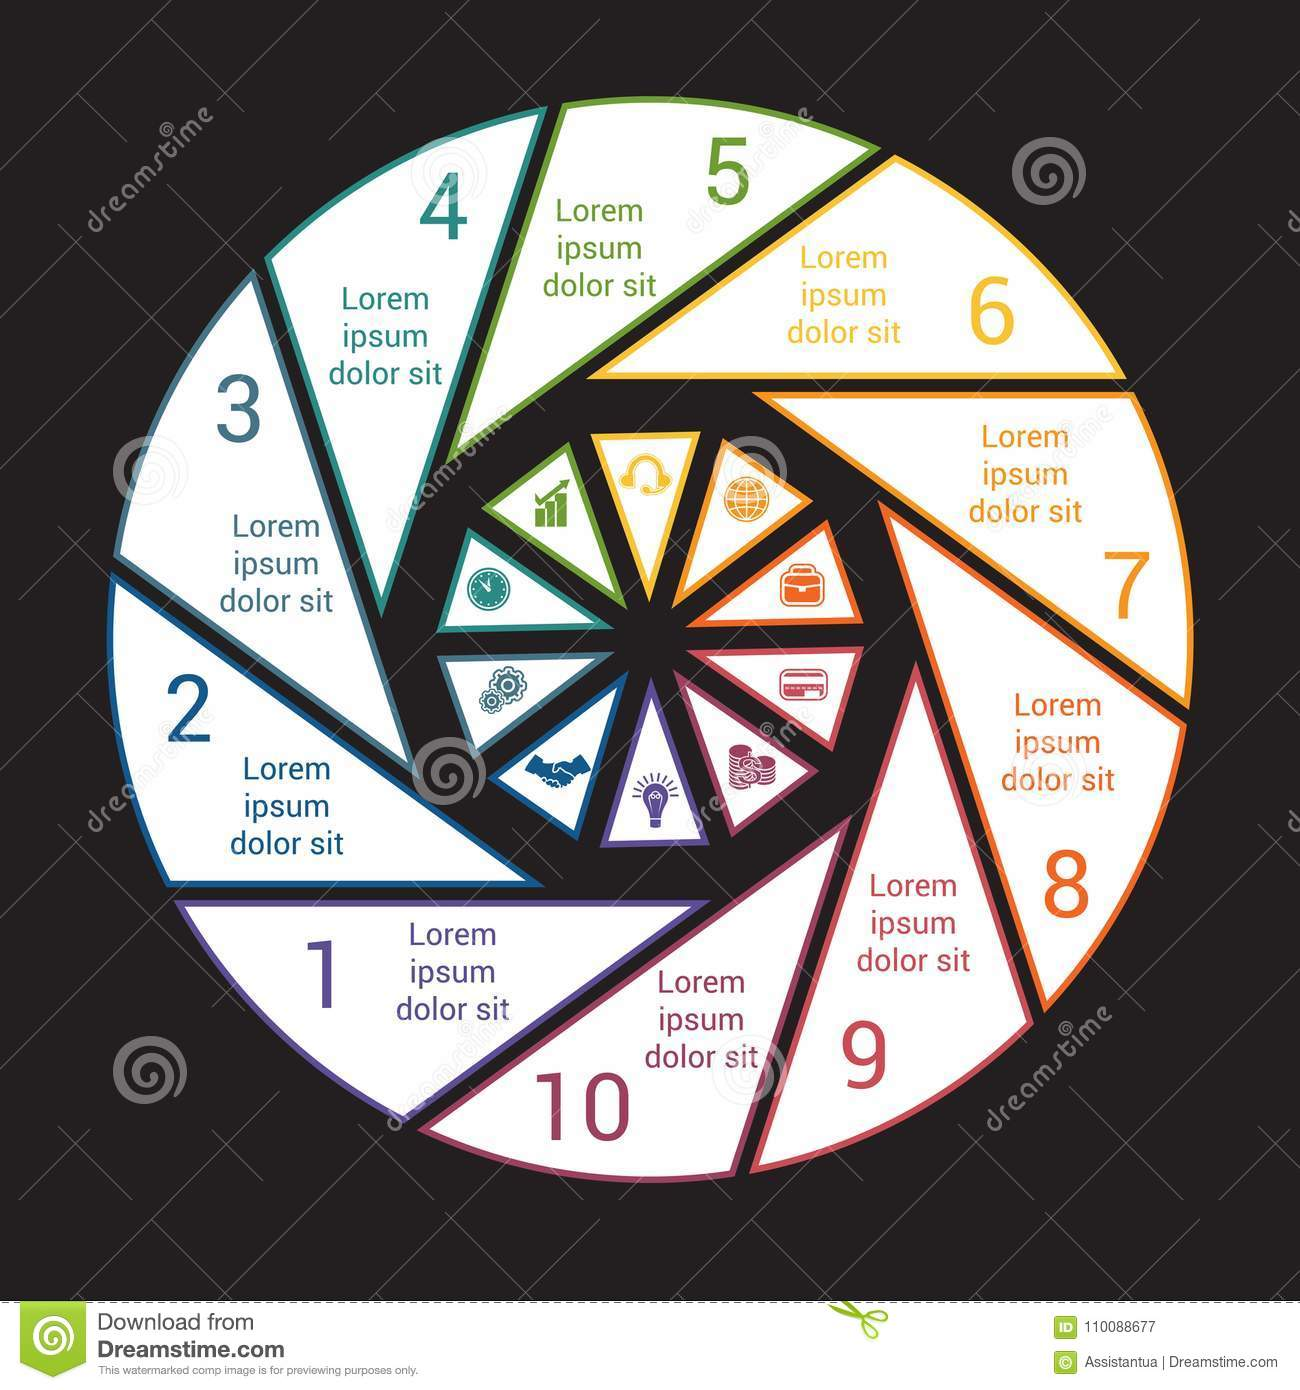 Pie chart with black background from colored lines for 10 option pie chart with black background from colored lines for 10 option nvjuhfo Choice Image